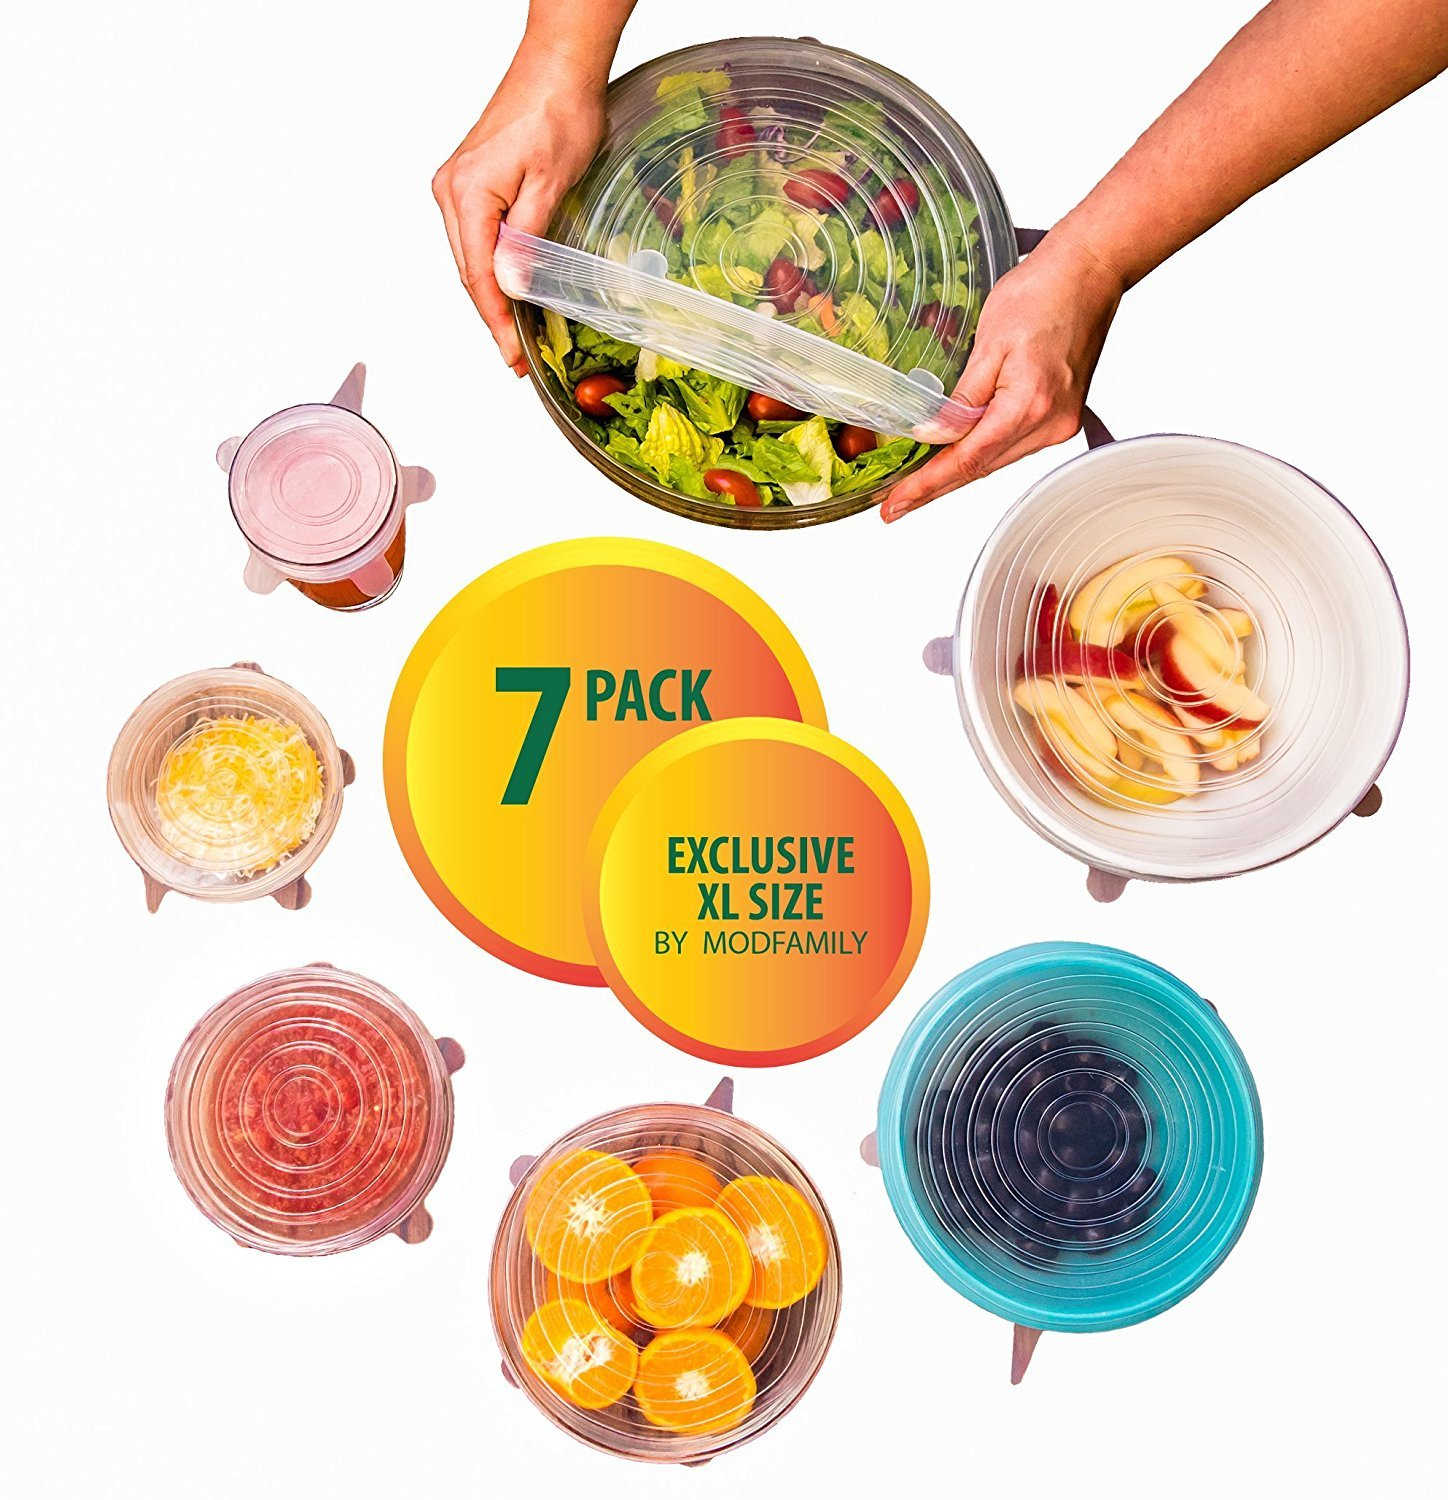 Silicone Stretch Lids (7 pack, includes EXCLUSIVE XL SIZE), Reusable, Durable and Expandable